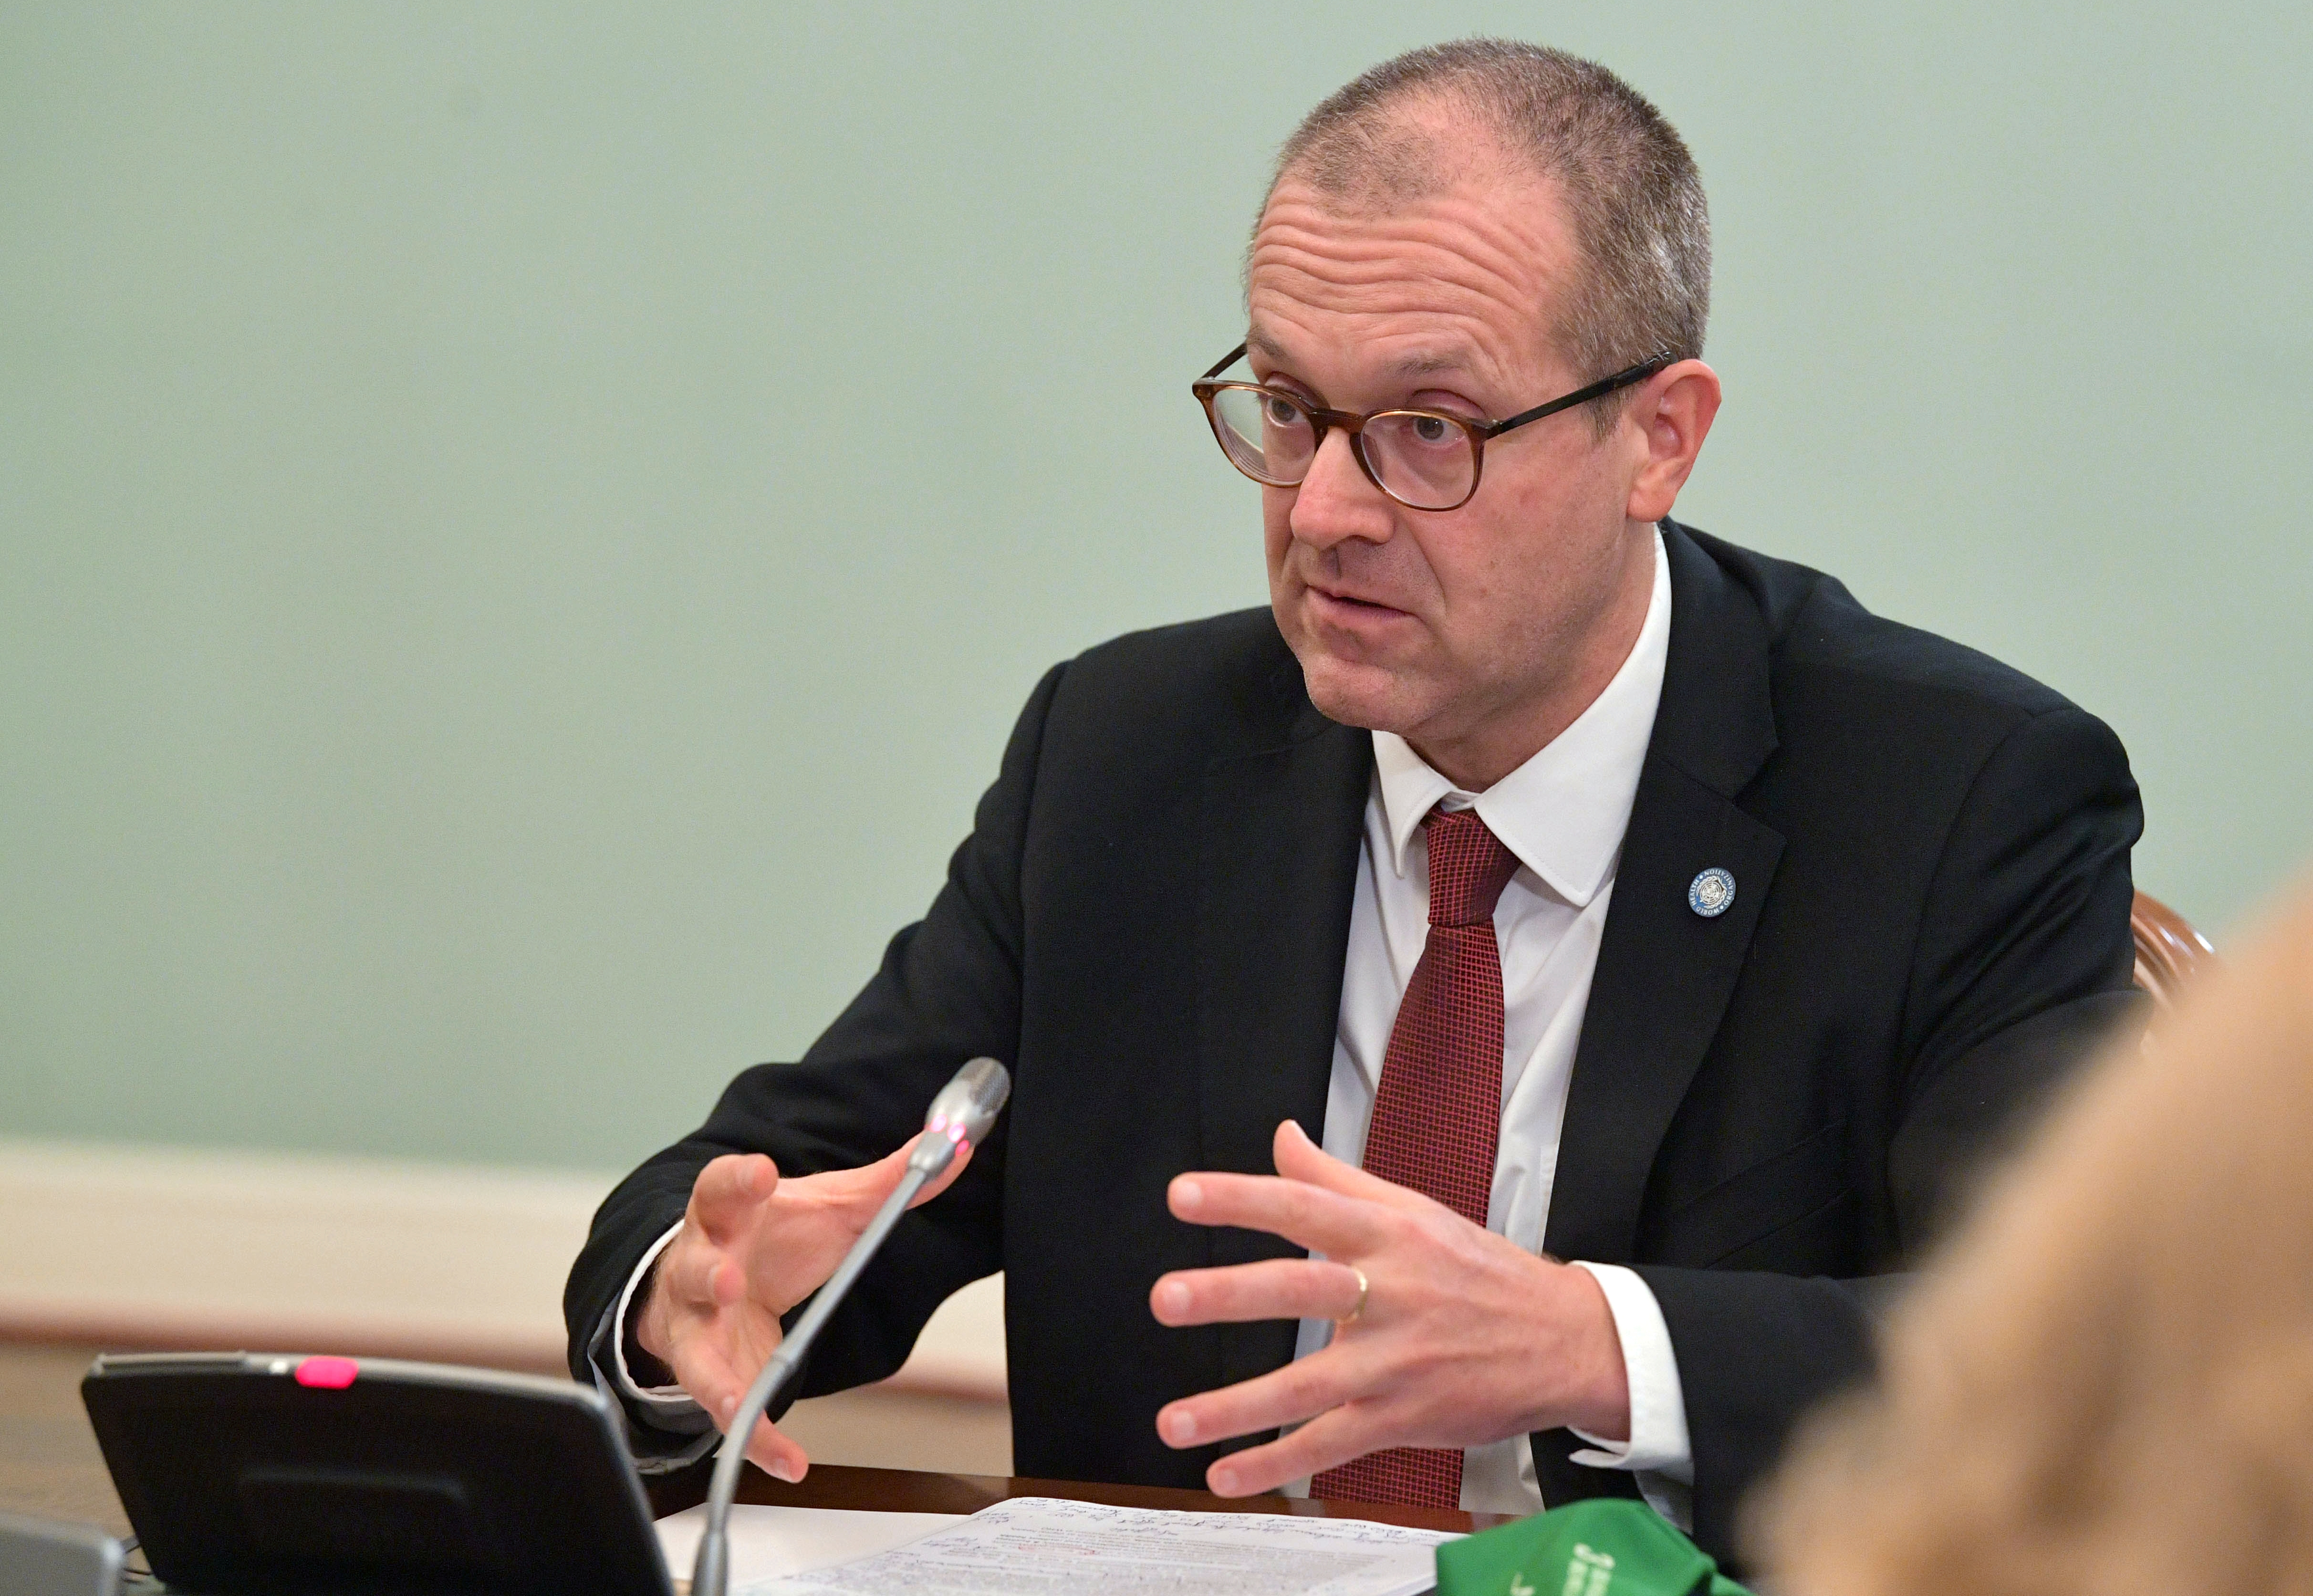 Hans Kluge, World Health Organization regional director for Europe, attends a meeting with Russian Prime Minister Mikhail Mishustin in Moscow, Russia September 23, 2020. Sputnik/Alexander Astafyev/Pool via REUTERS